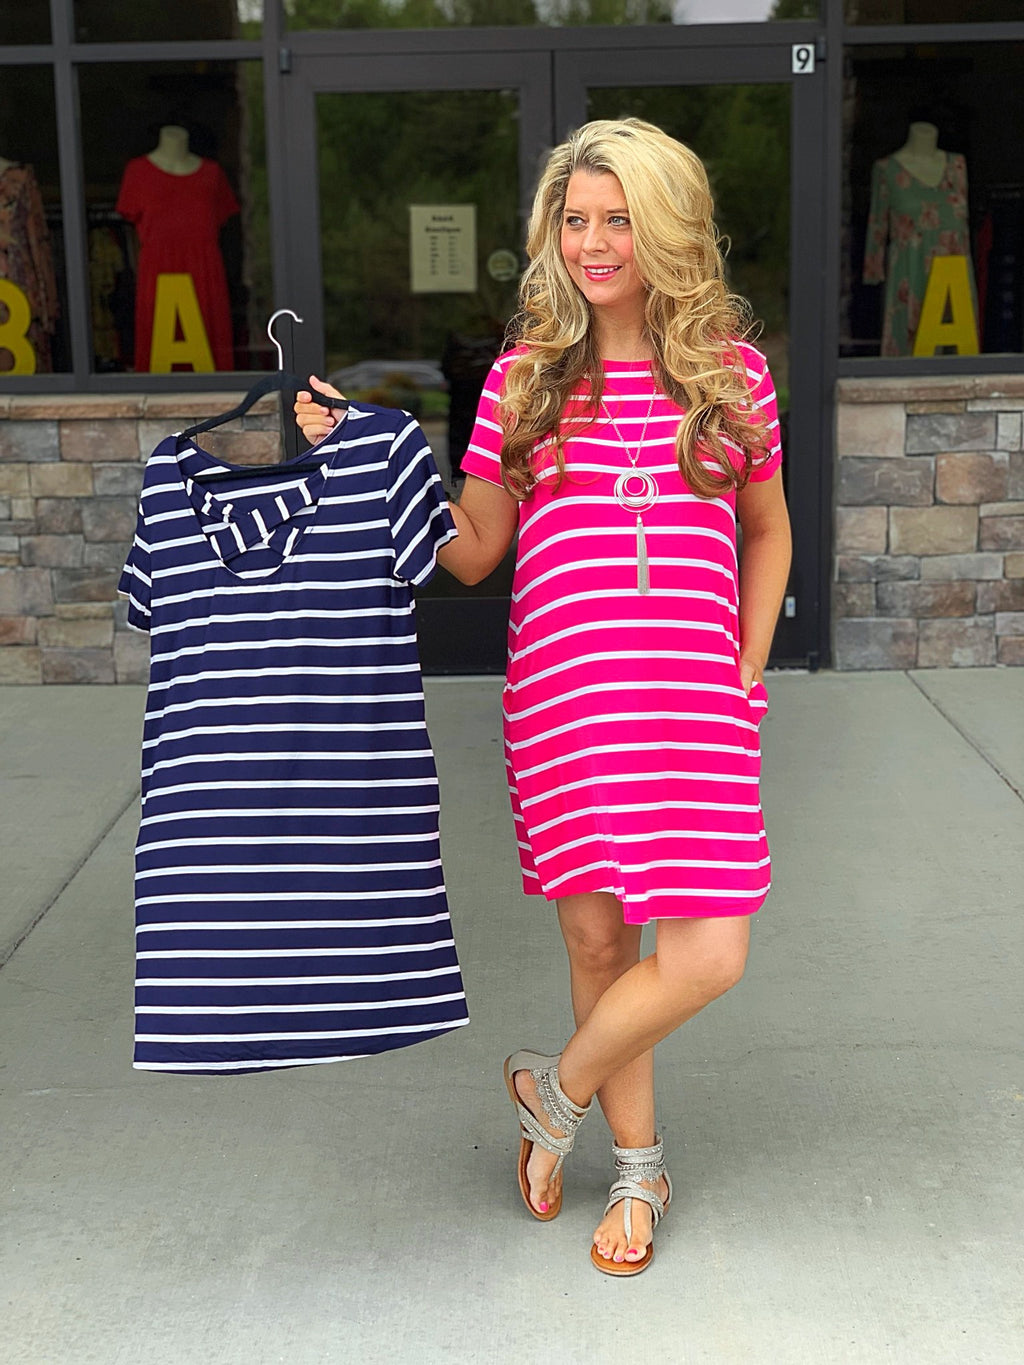 Striped Dress with Criss Cross Back Detail